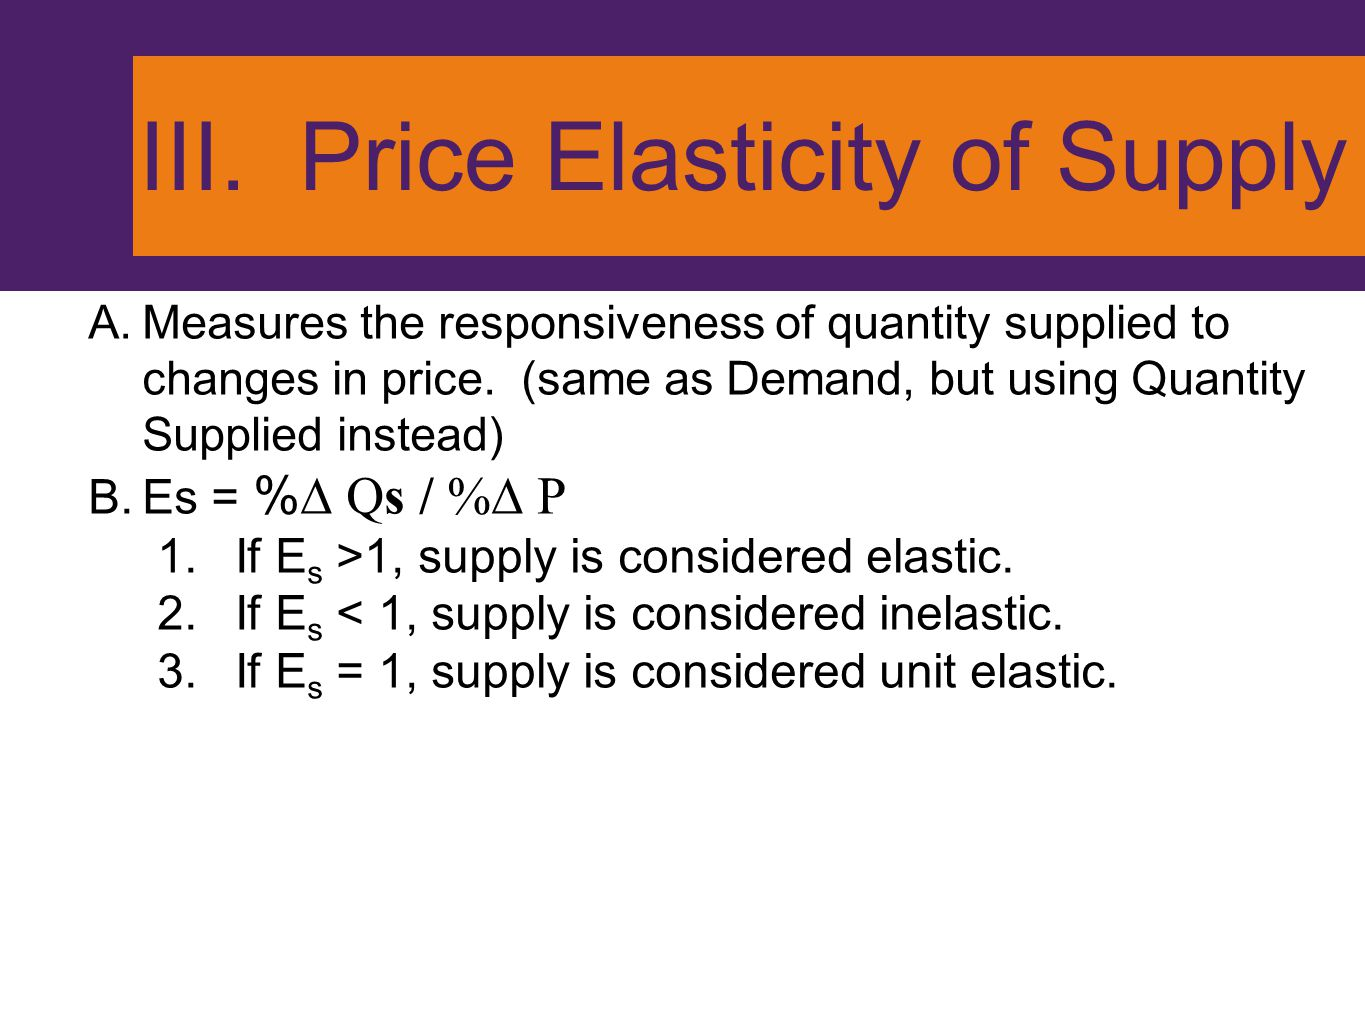 III. Price Elasticity of Supply